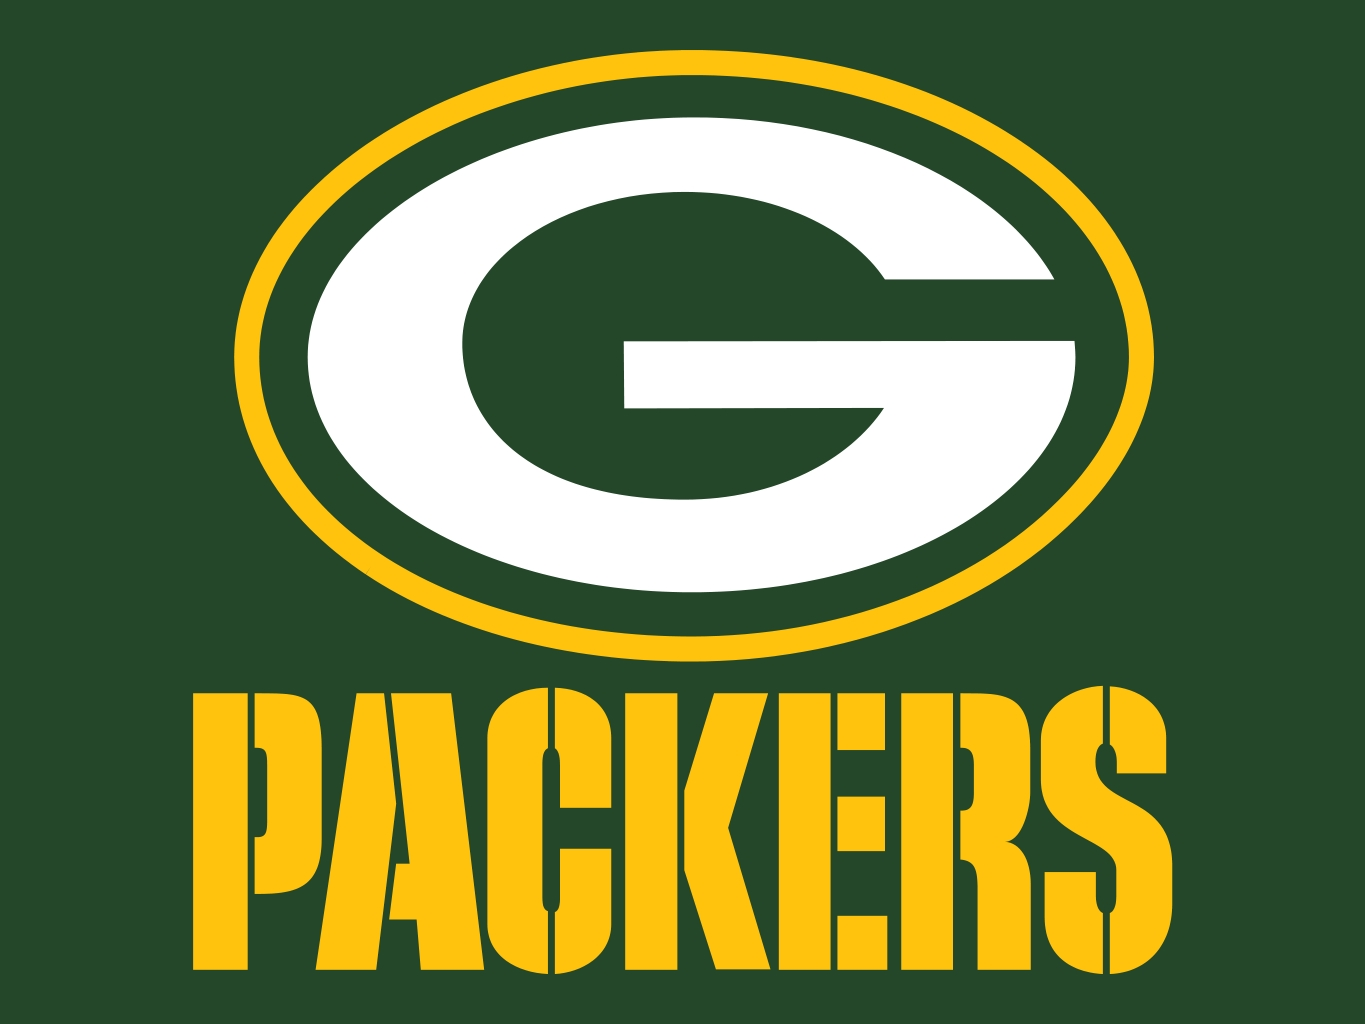 Revered image with regard to green bay packers printable logo